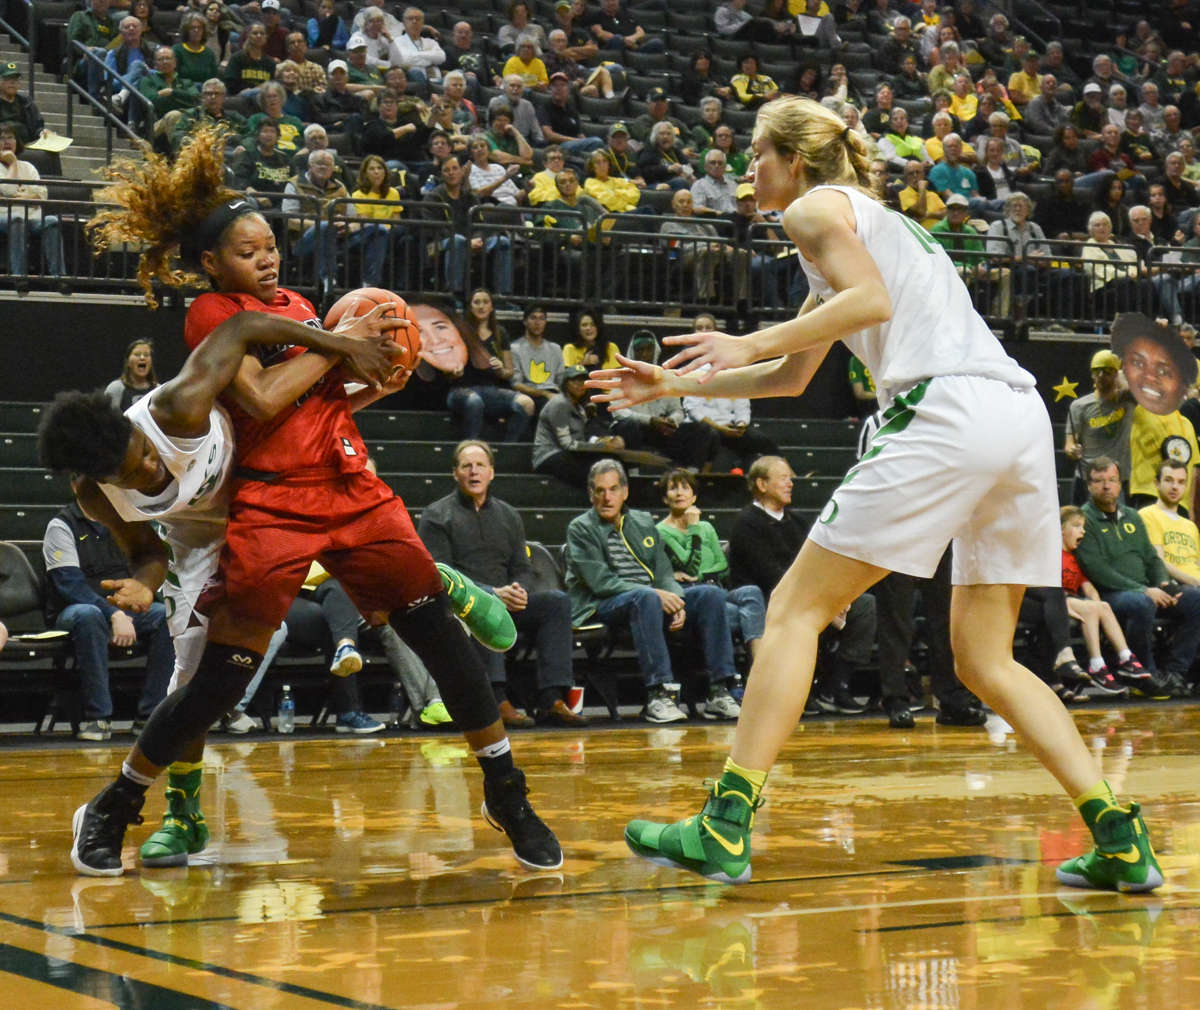 Cardinals Chastadie Barrs and Ducks Mar'Shay Moore fight over a rebound. The Oregon Ducks women's basketball team won their season opener against the Lamar Cardinals 84-67. Photo by Jacob Smith, Oregon News Lab